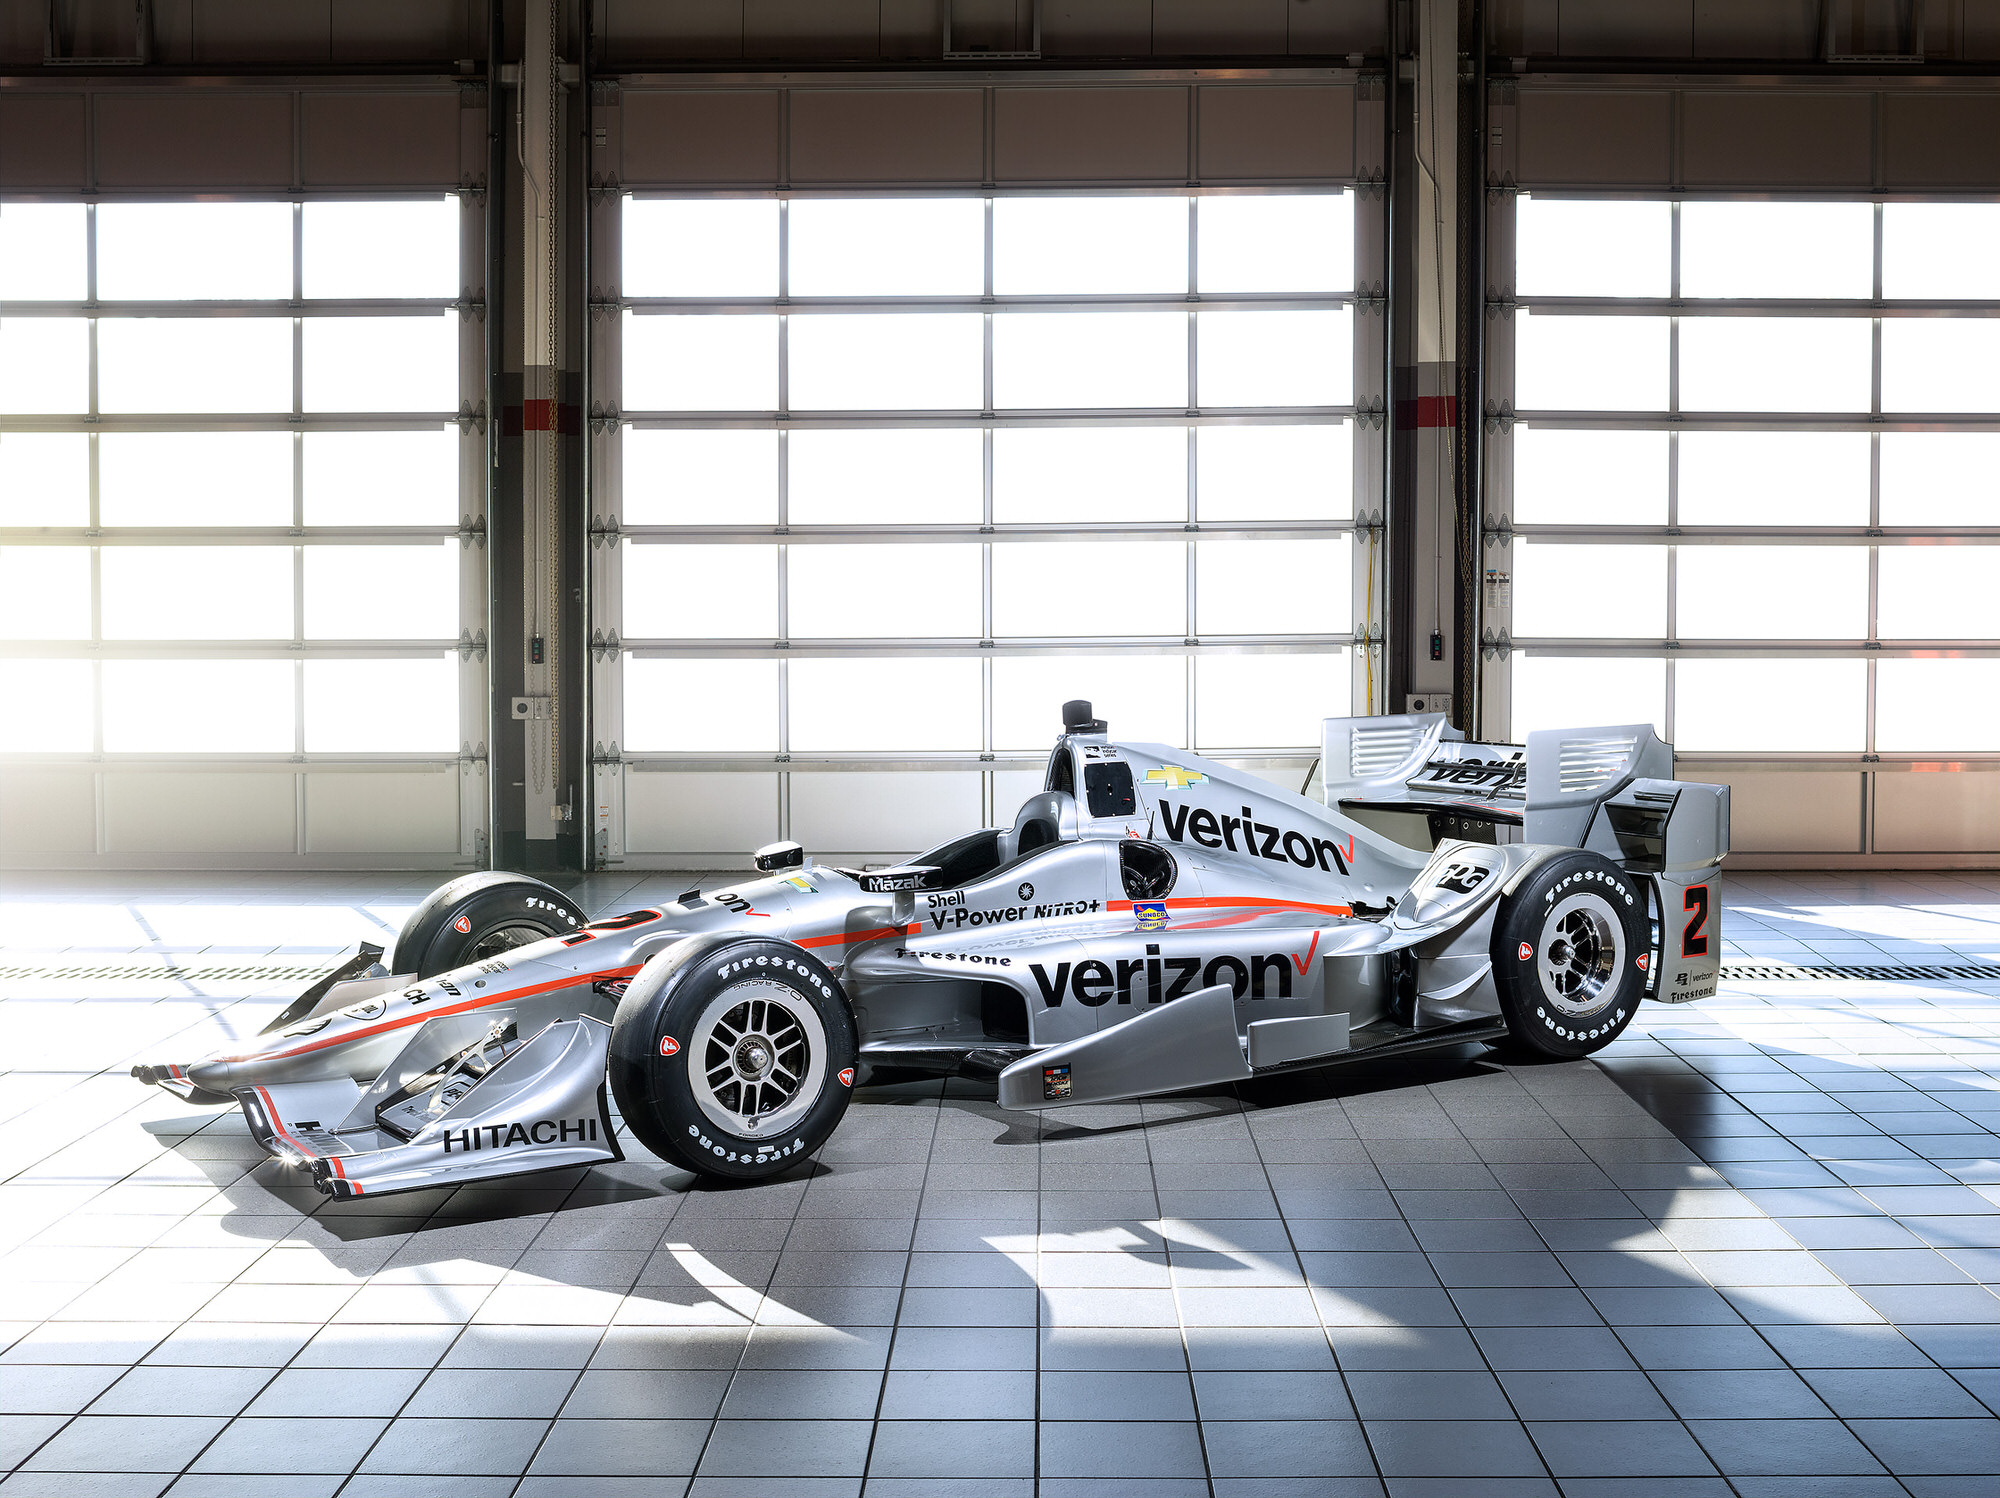 Team Penske Verizon IndyCar driven by Juan Pablo Montoya